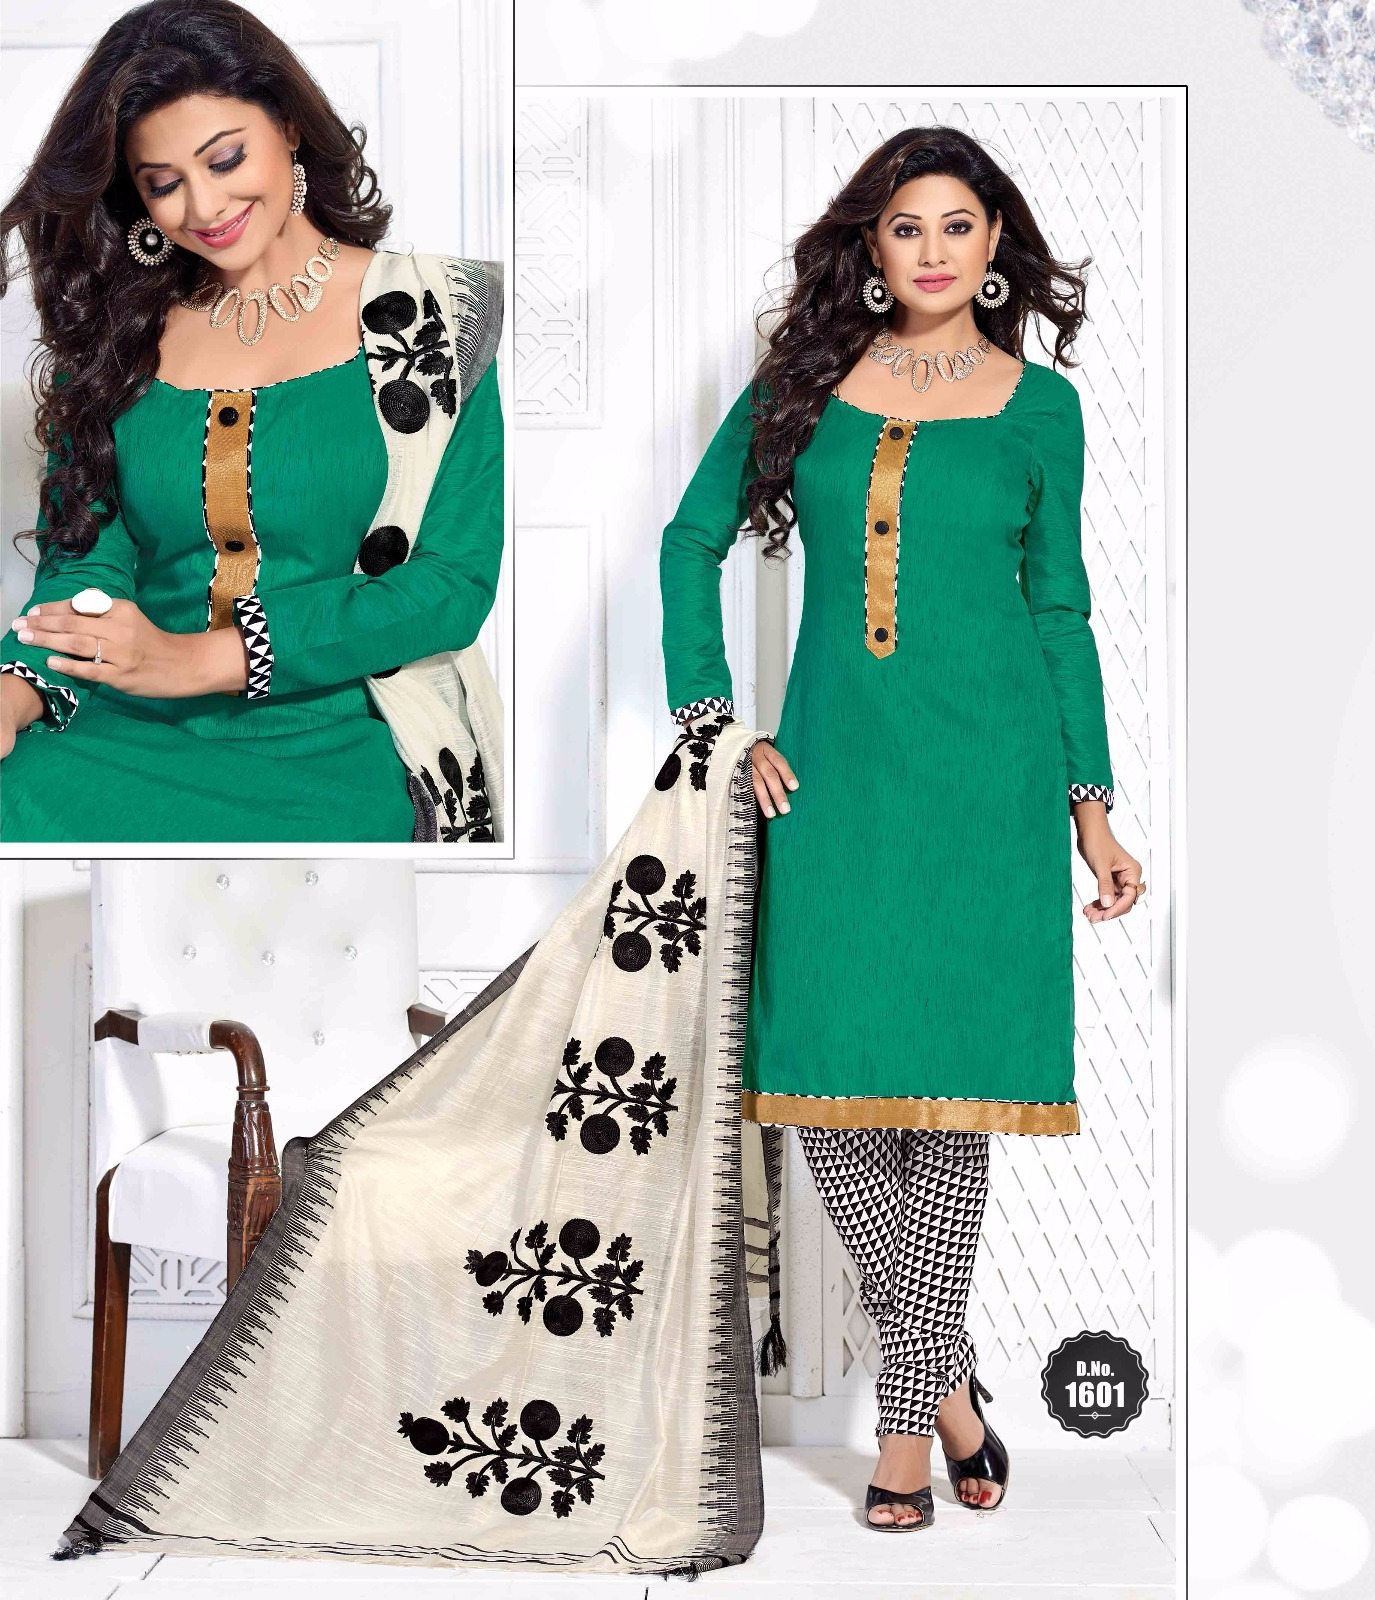 Rim Jim-16 – Latest New Churidar Dress Material Buy Online